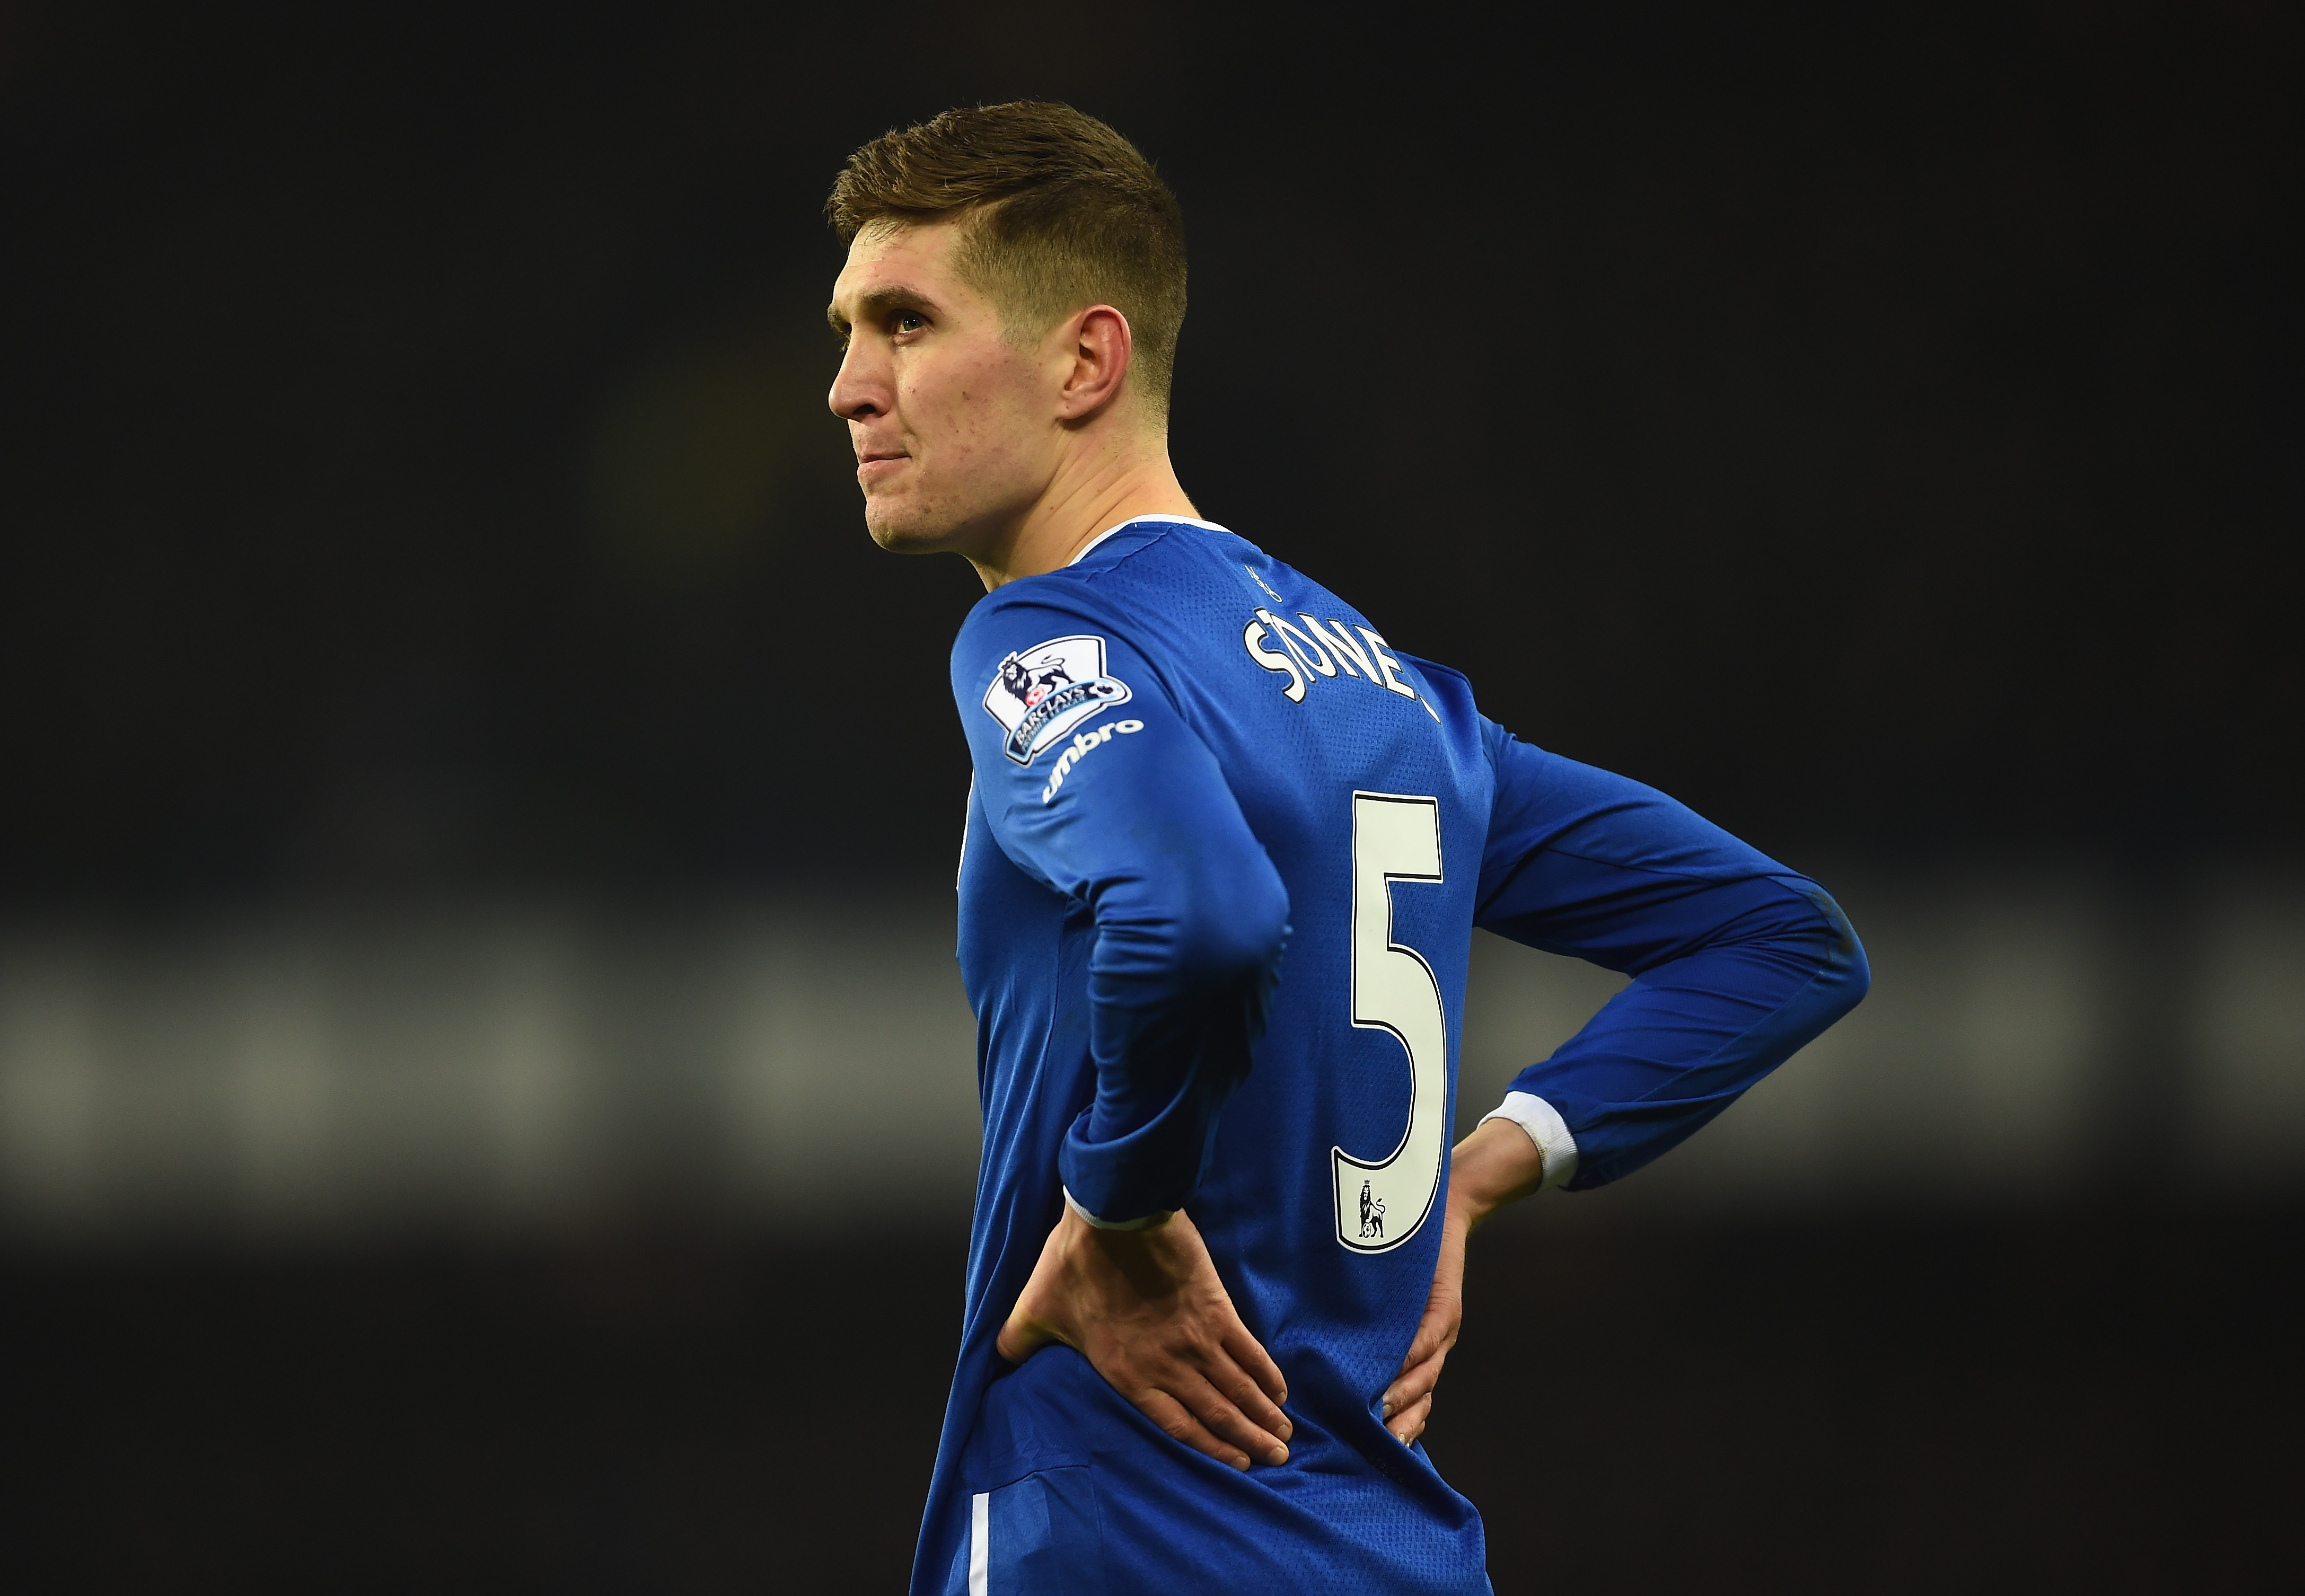 Why Arsenal should avoid getting involved in a bidding war for John Stones